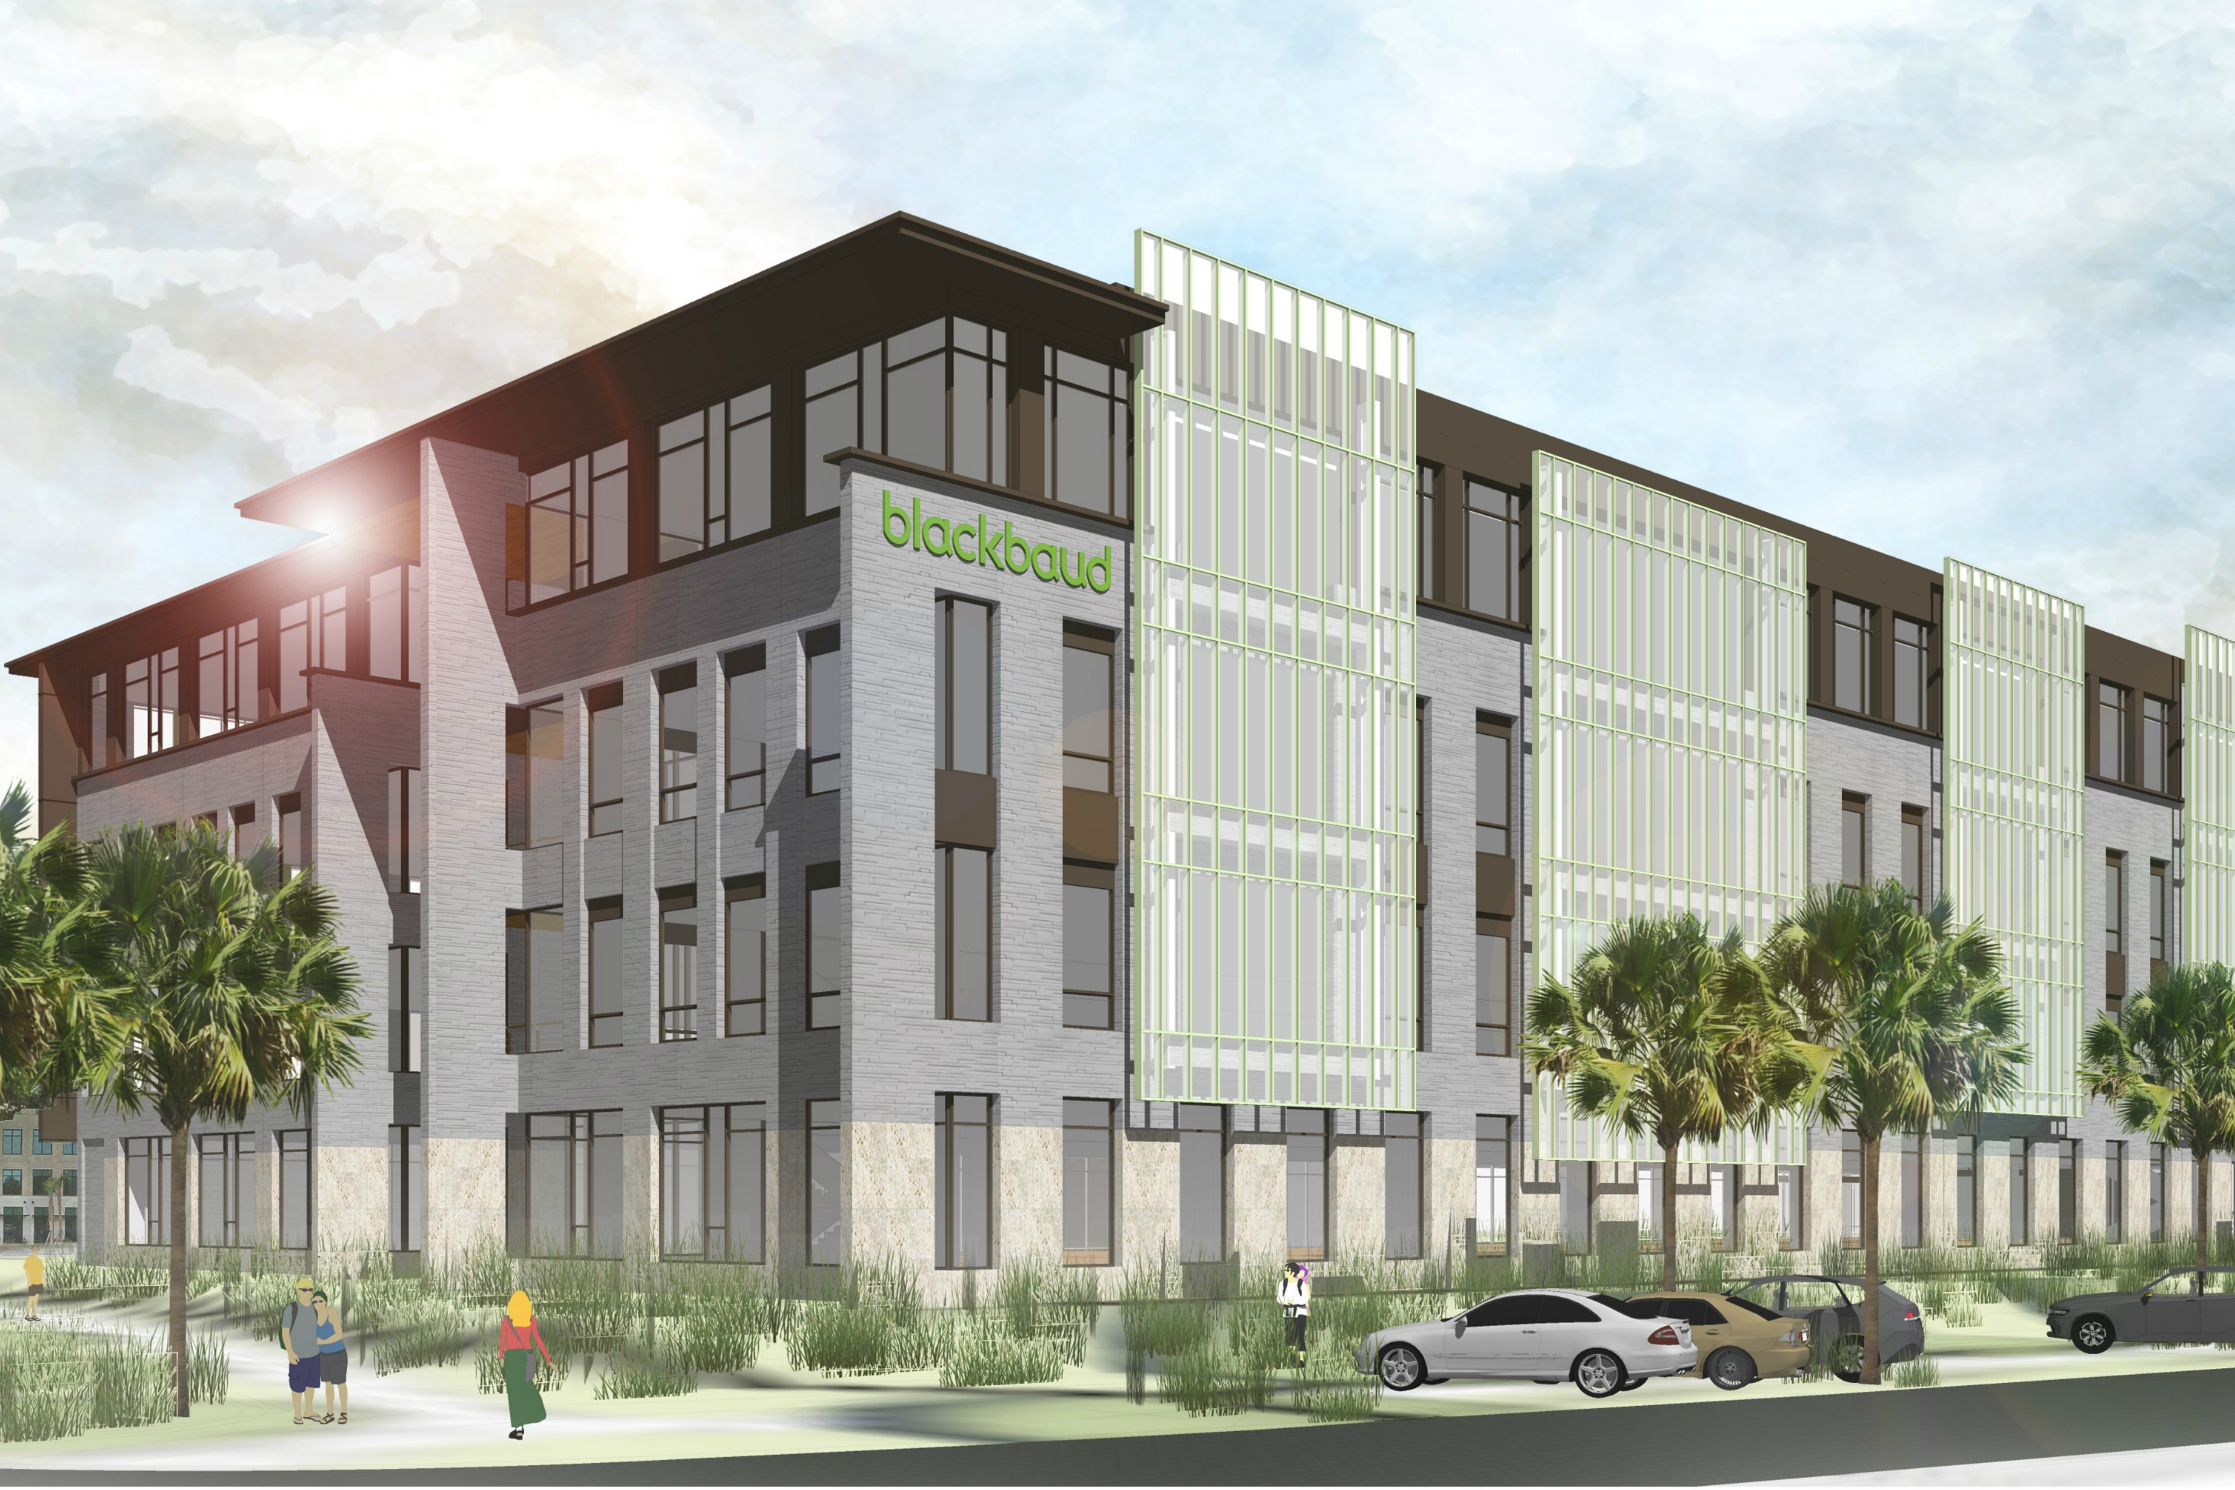 Blackbaud Stays Put, Launches S.C. Headquarters Project